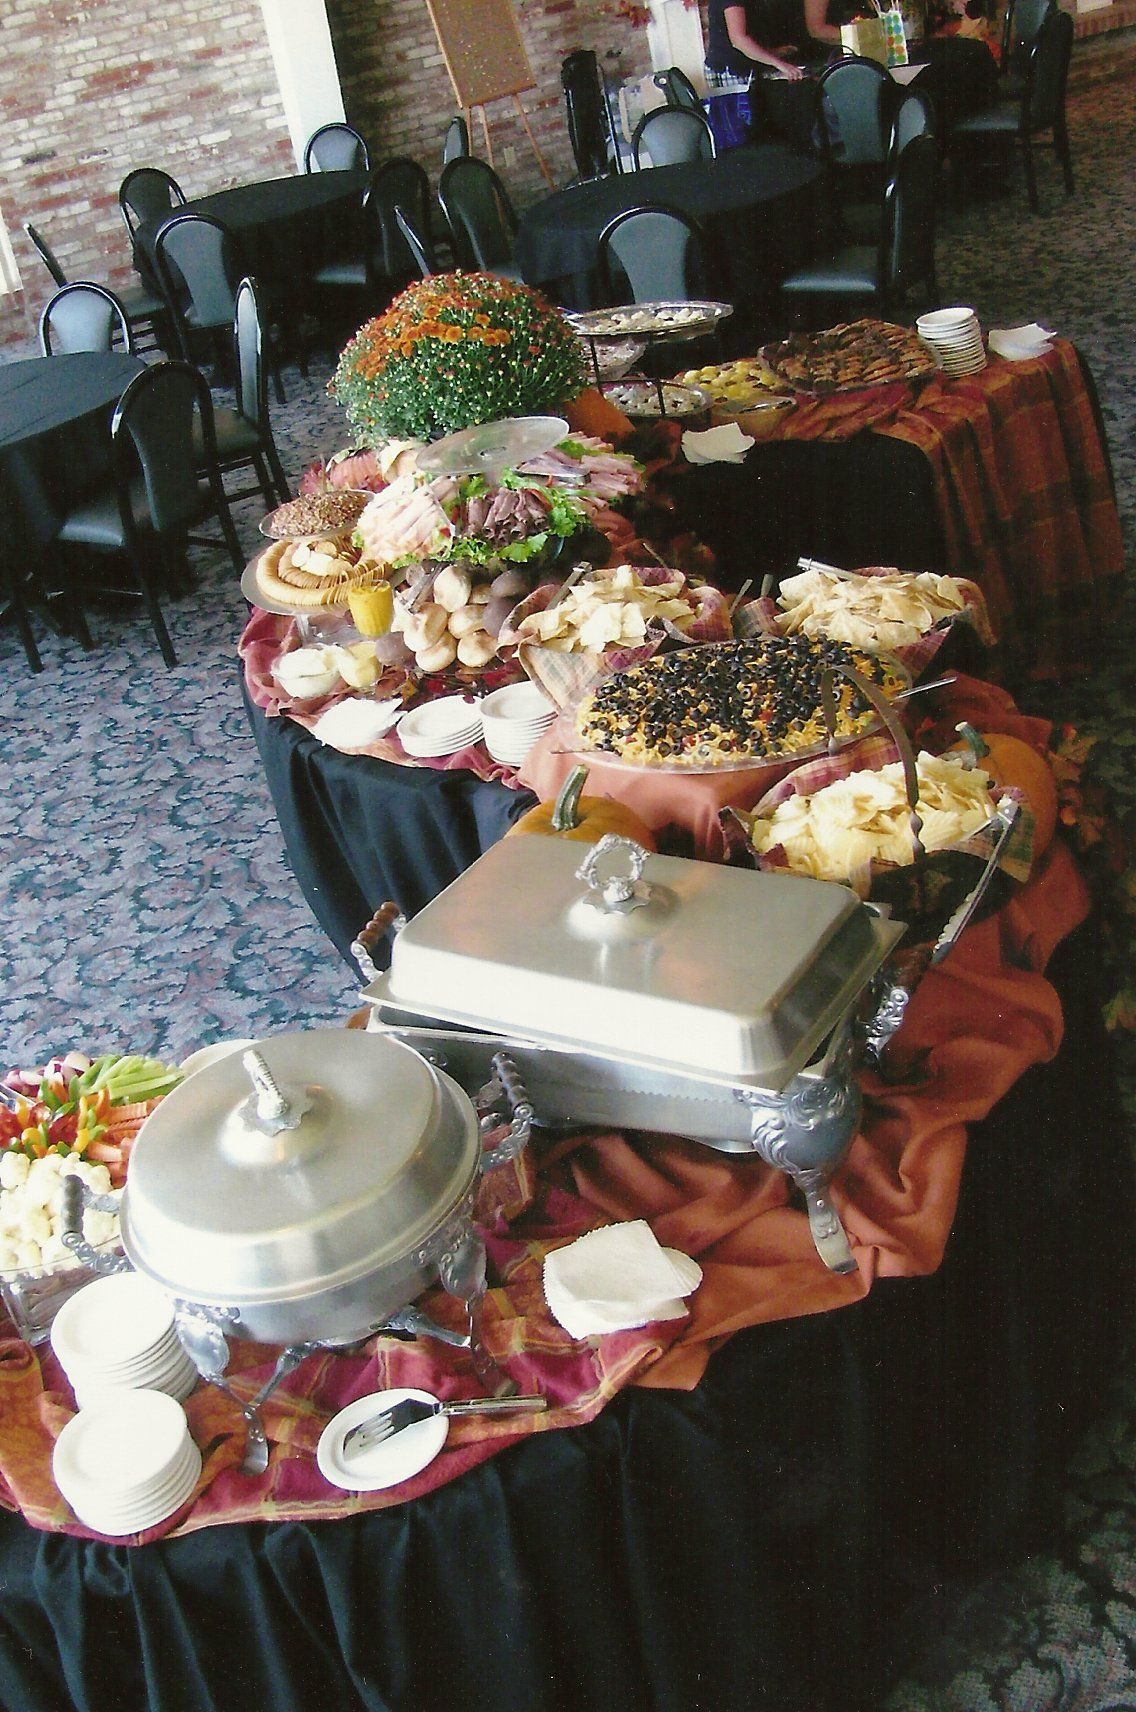 Catering Buffet Set Up Diagram Wiring Forward Reverse Motor Starter All Of These Pictures Are Parties That I Managed At My